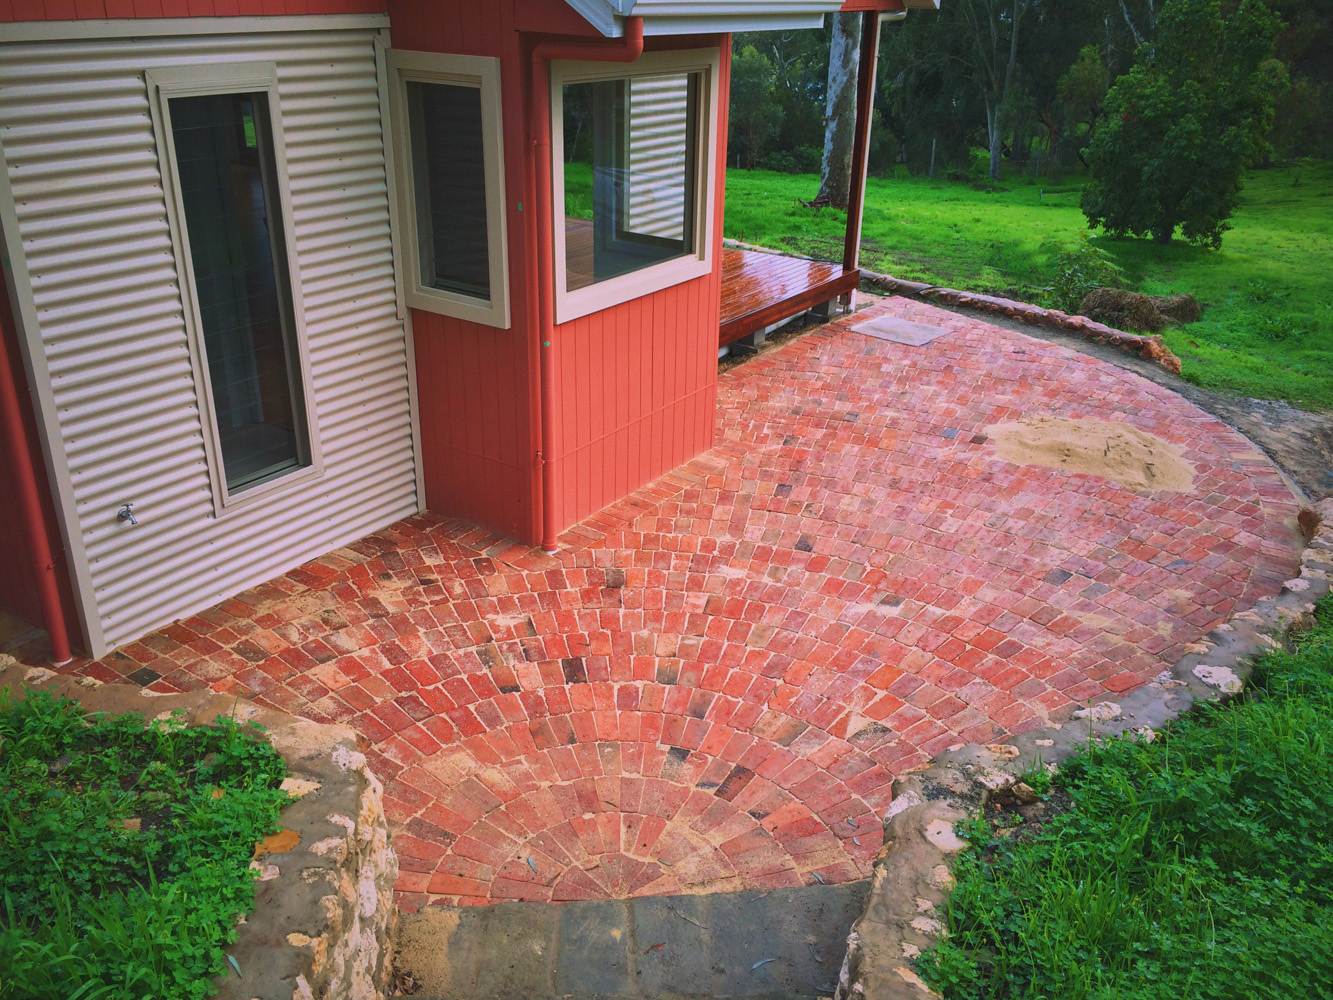 Soothing old red brick paving